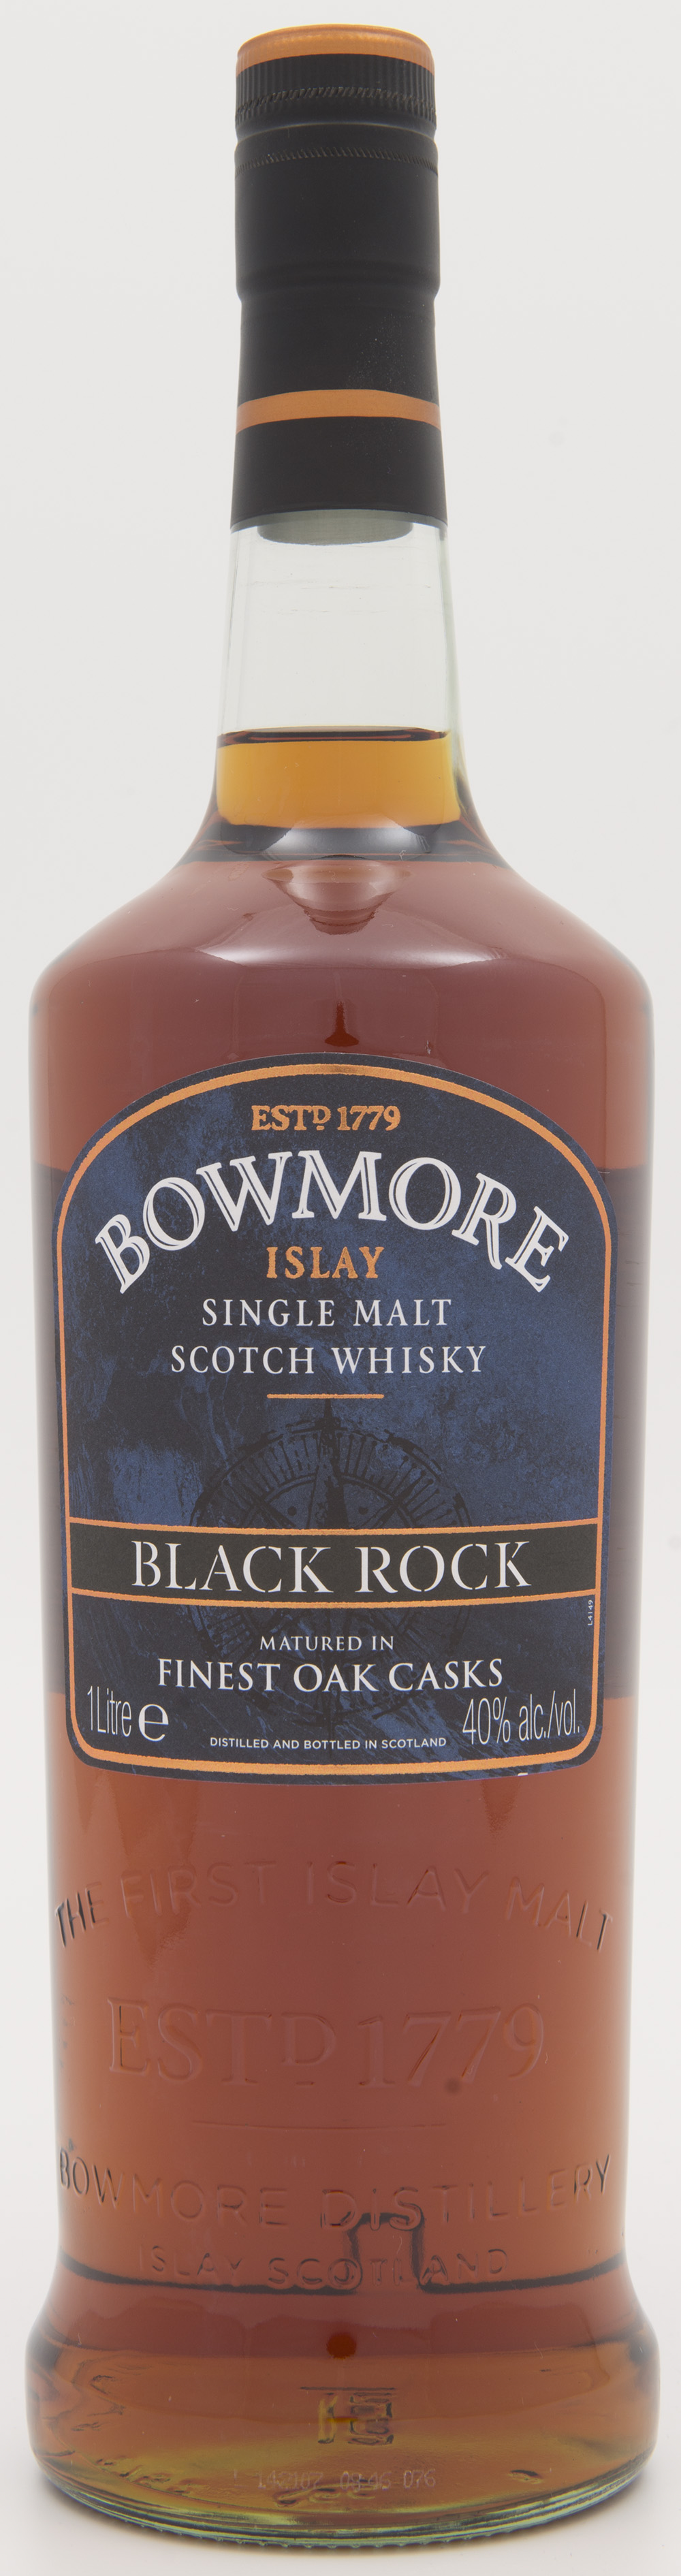 Billede: DSC_3842 Bowmore Black Rock - bottle front.jpg